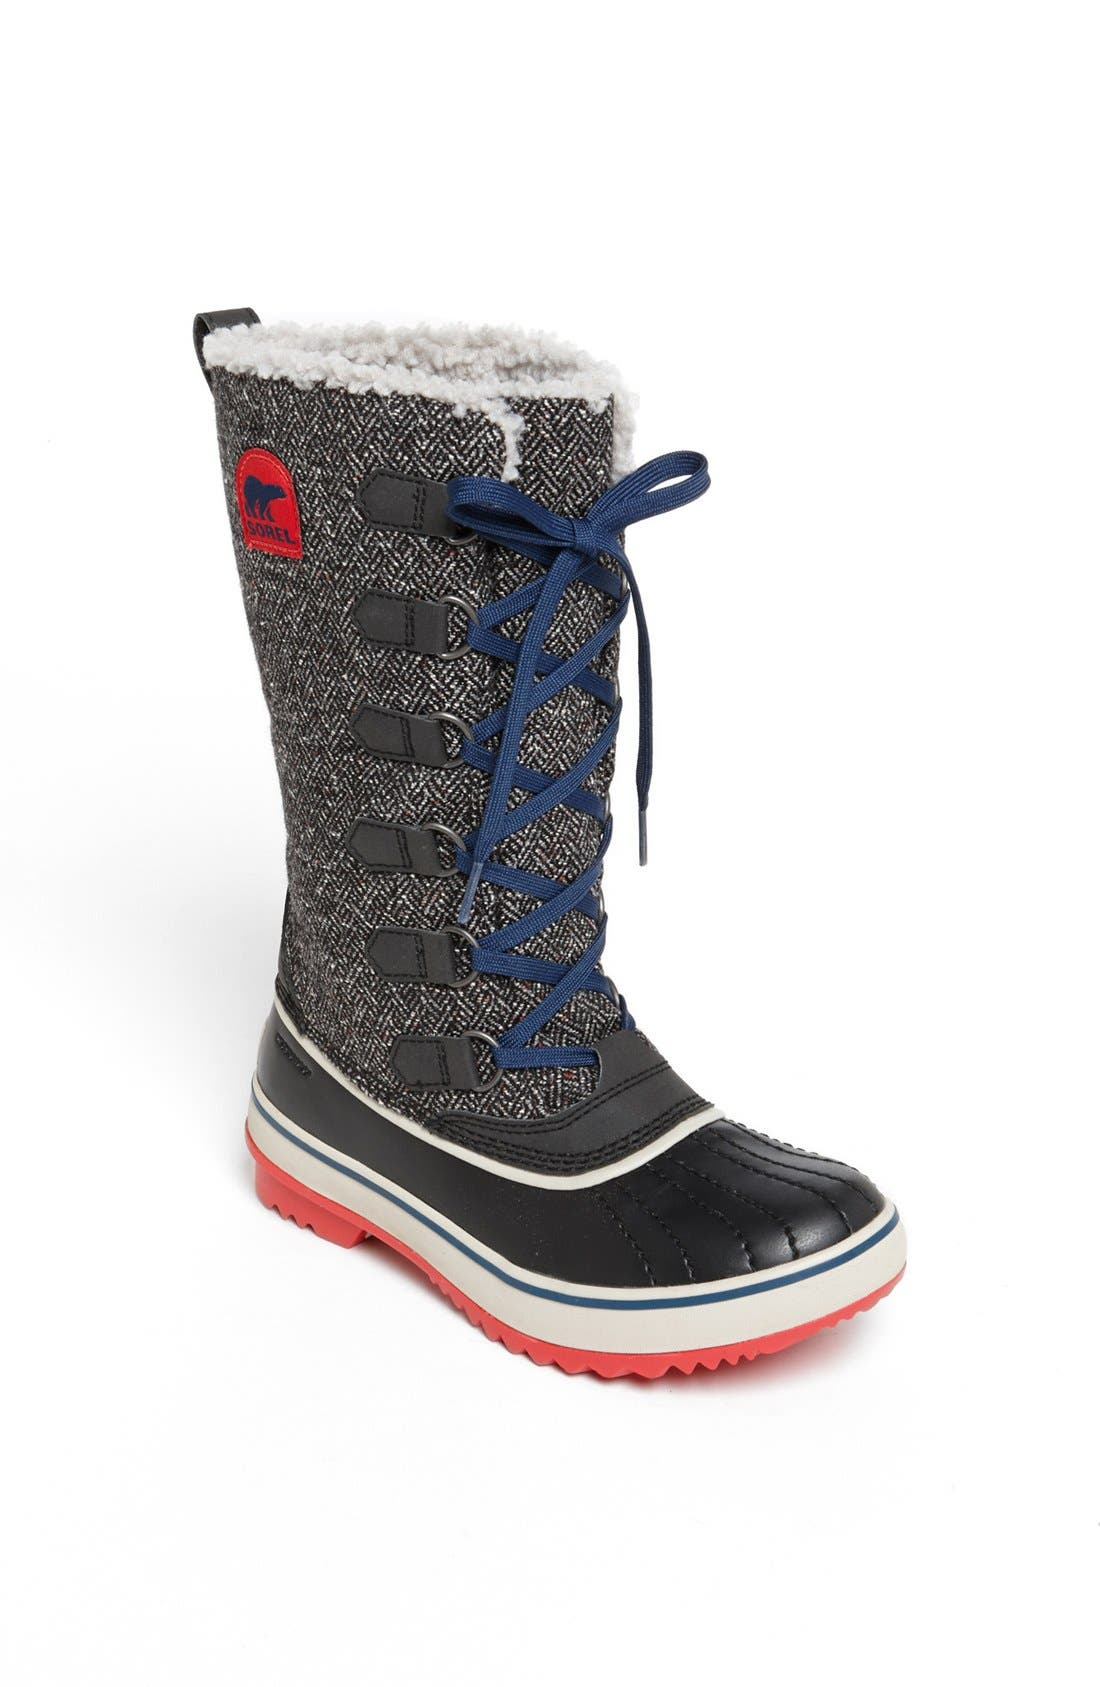 Alternate Image 1 Selected - SOREL 'Tivoli High' Waterproof Boot